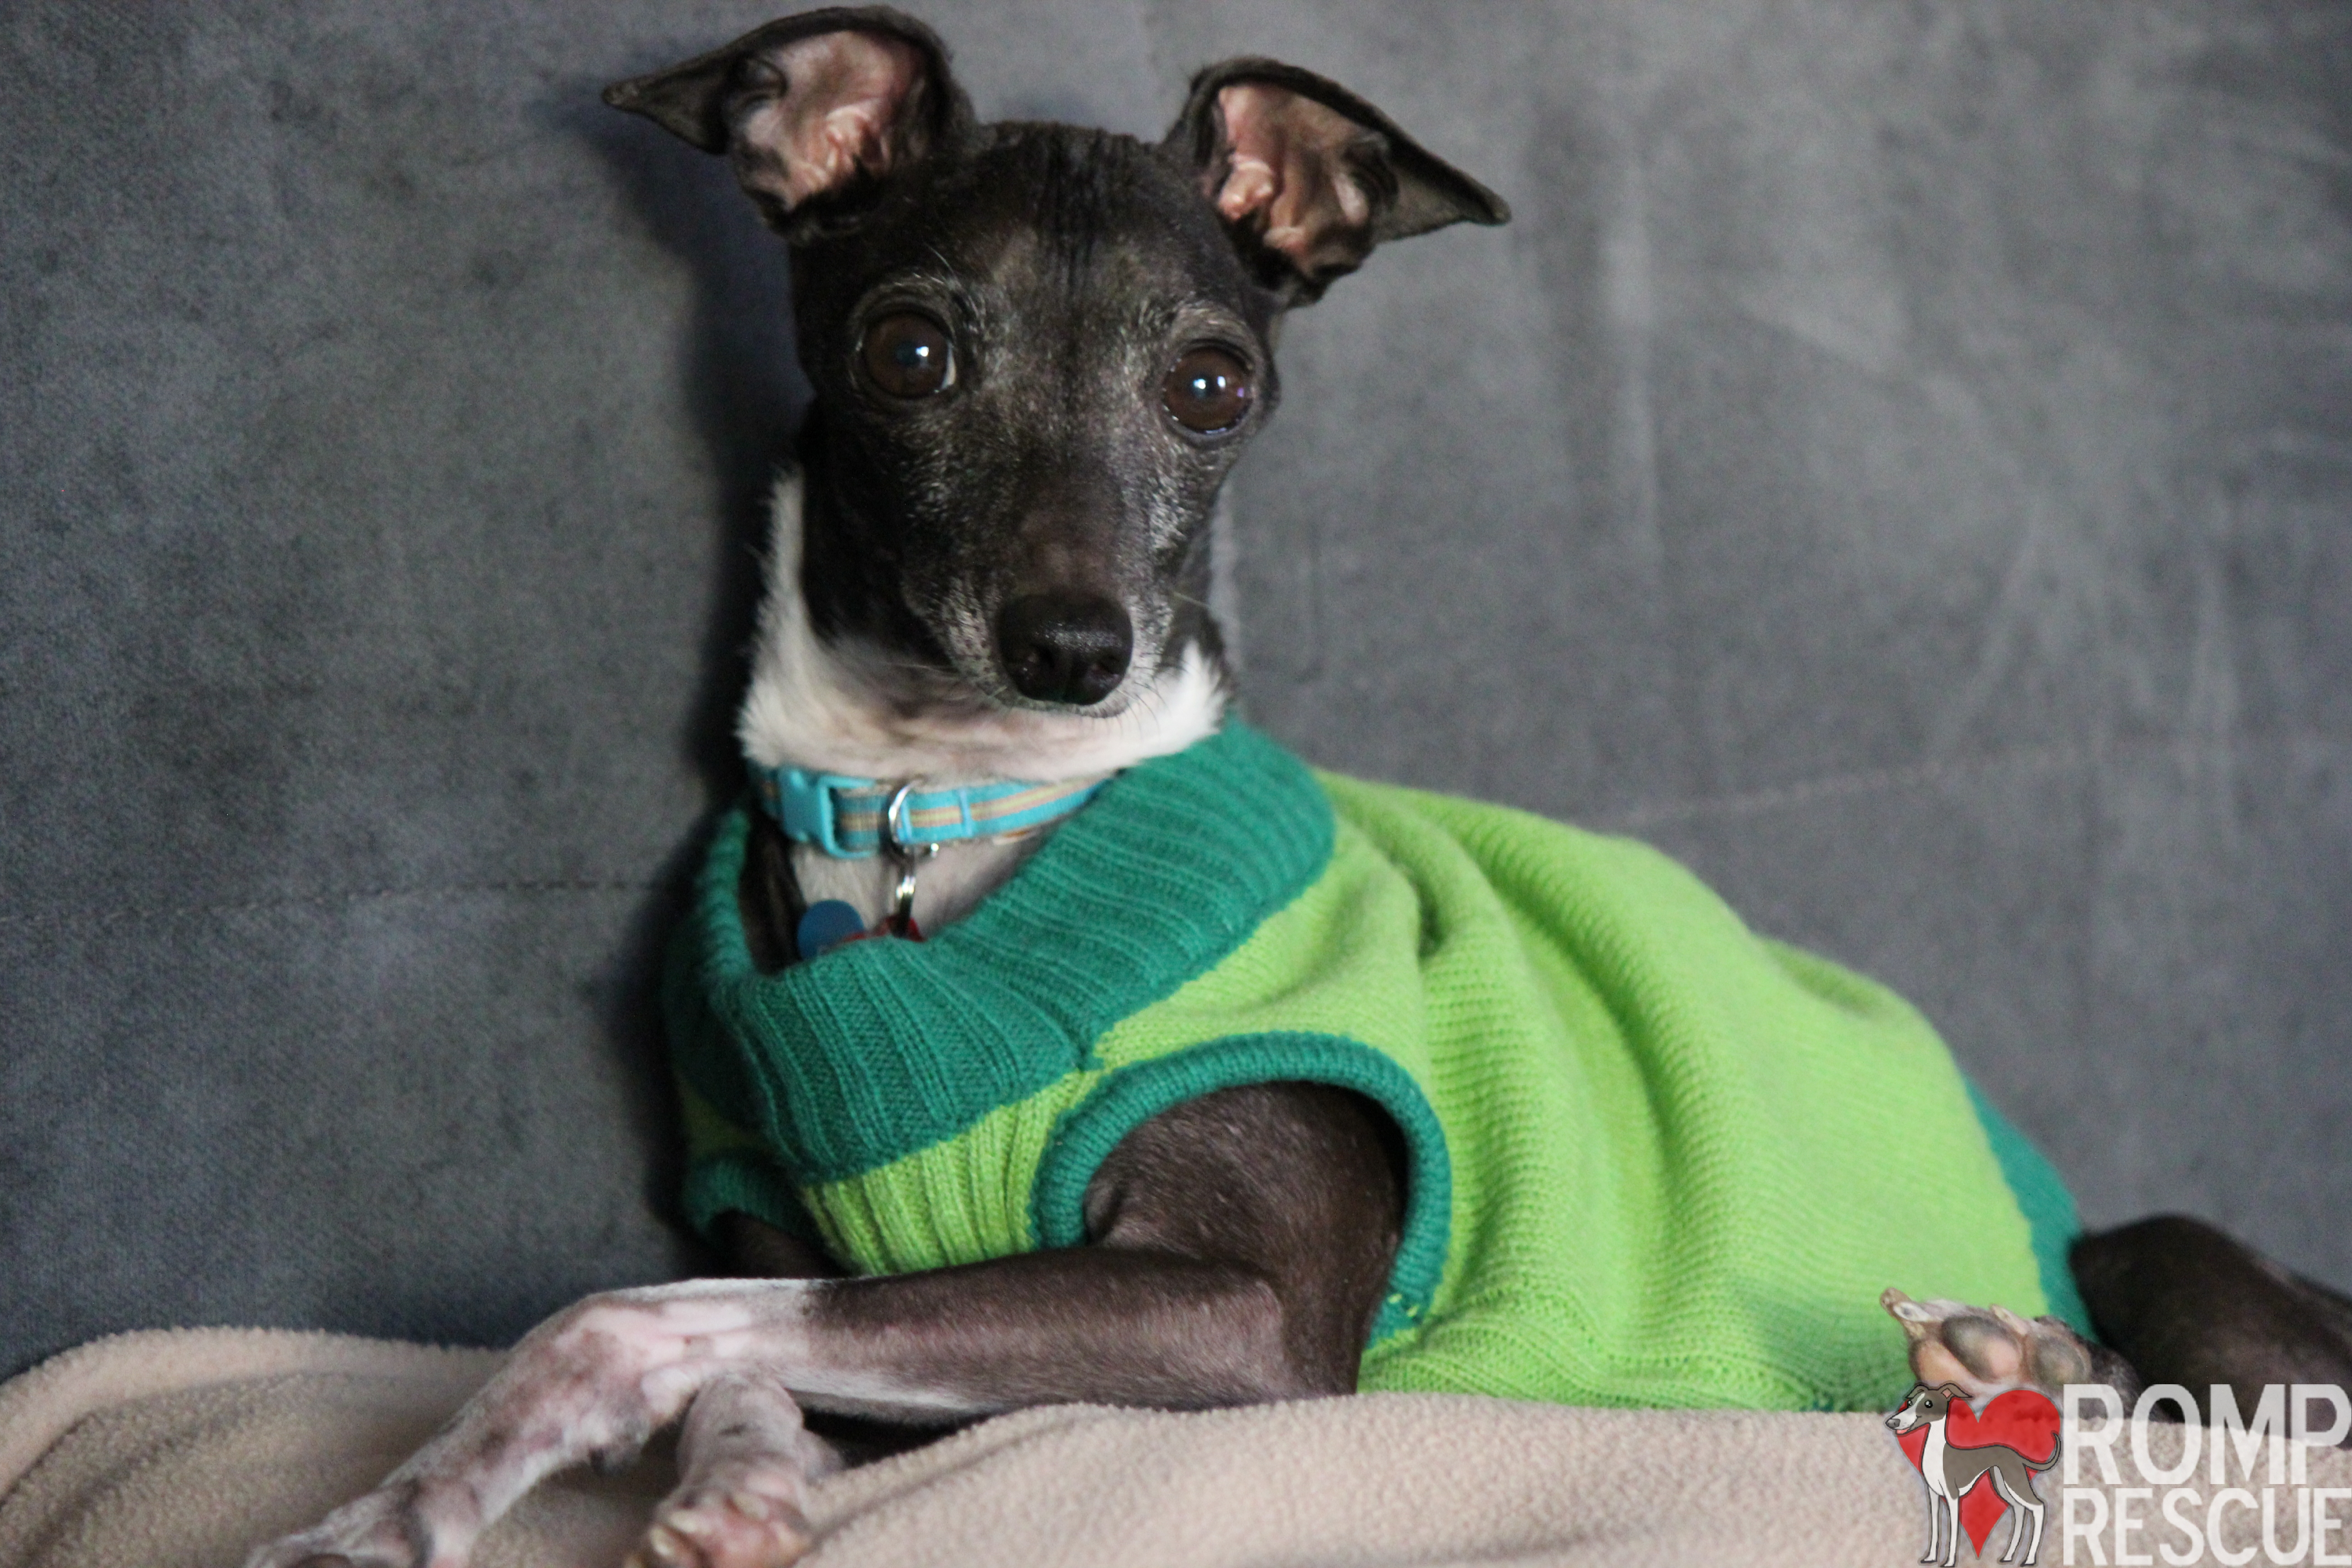 adopting an Italian Greyhound, italian greyhound, romp rescue, italian greyhound rescue, italian greyhound, italian greyhound cons, cons italian greyhound, bad, breed, rescue, chicago, chicago italian greyhound